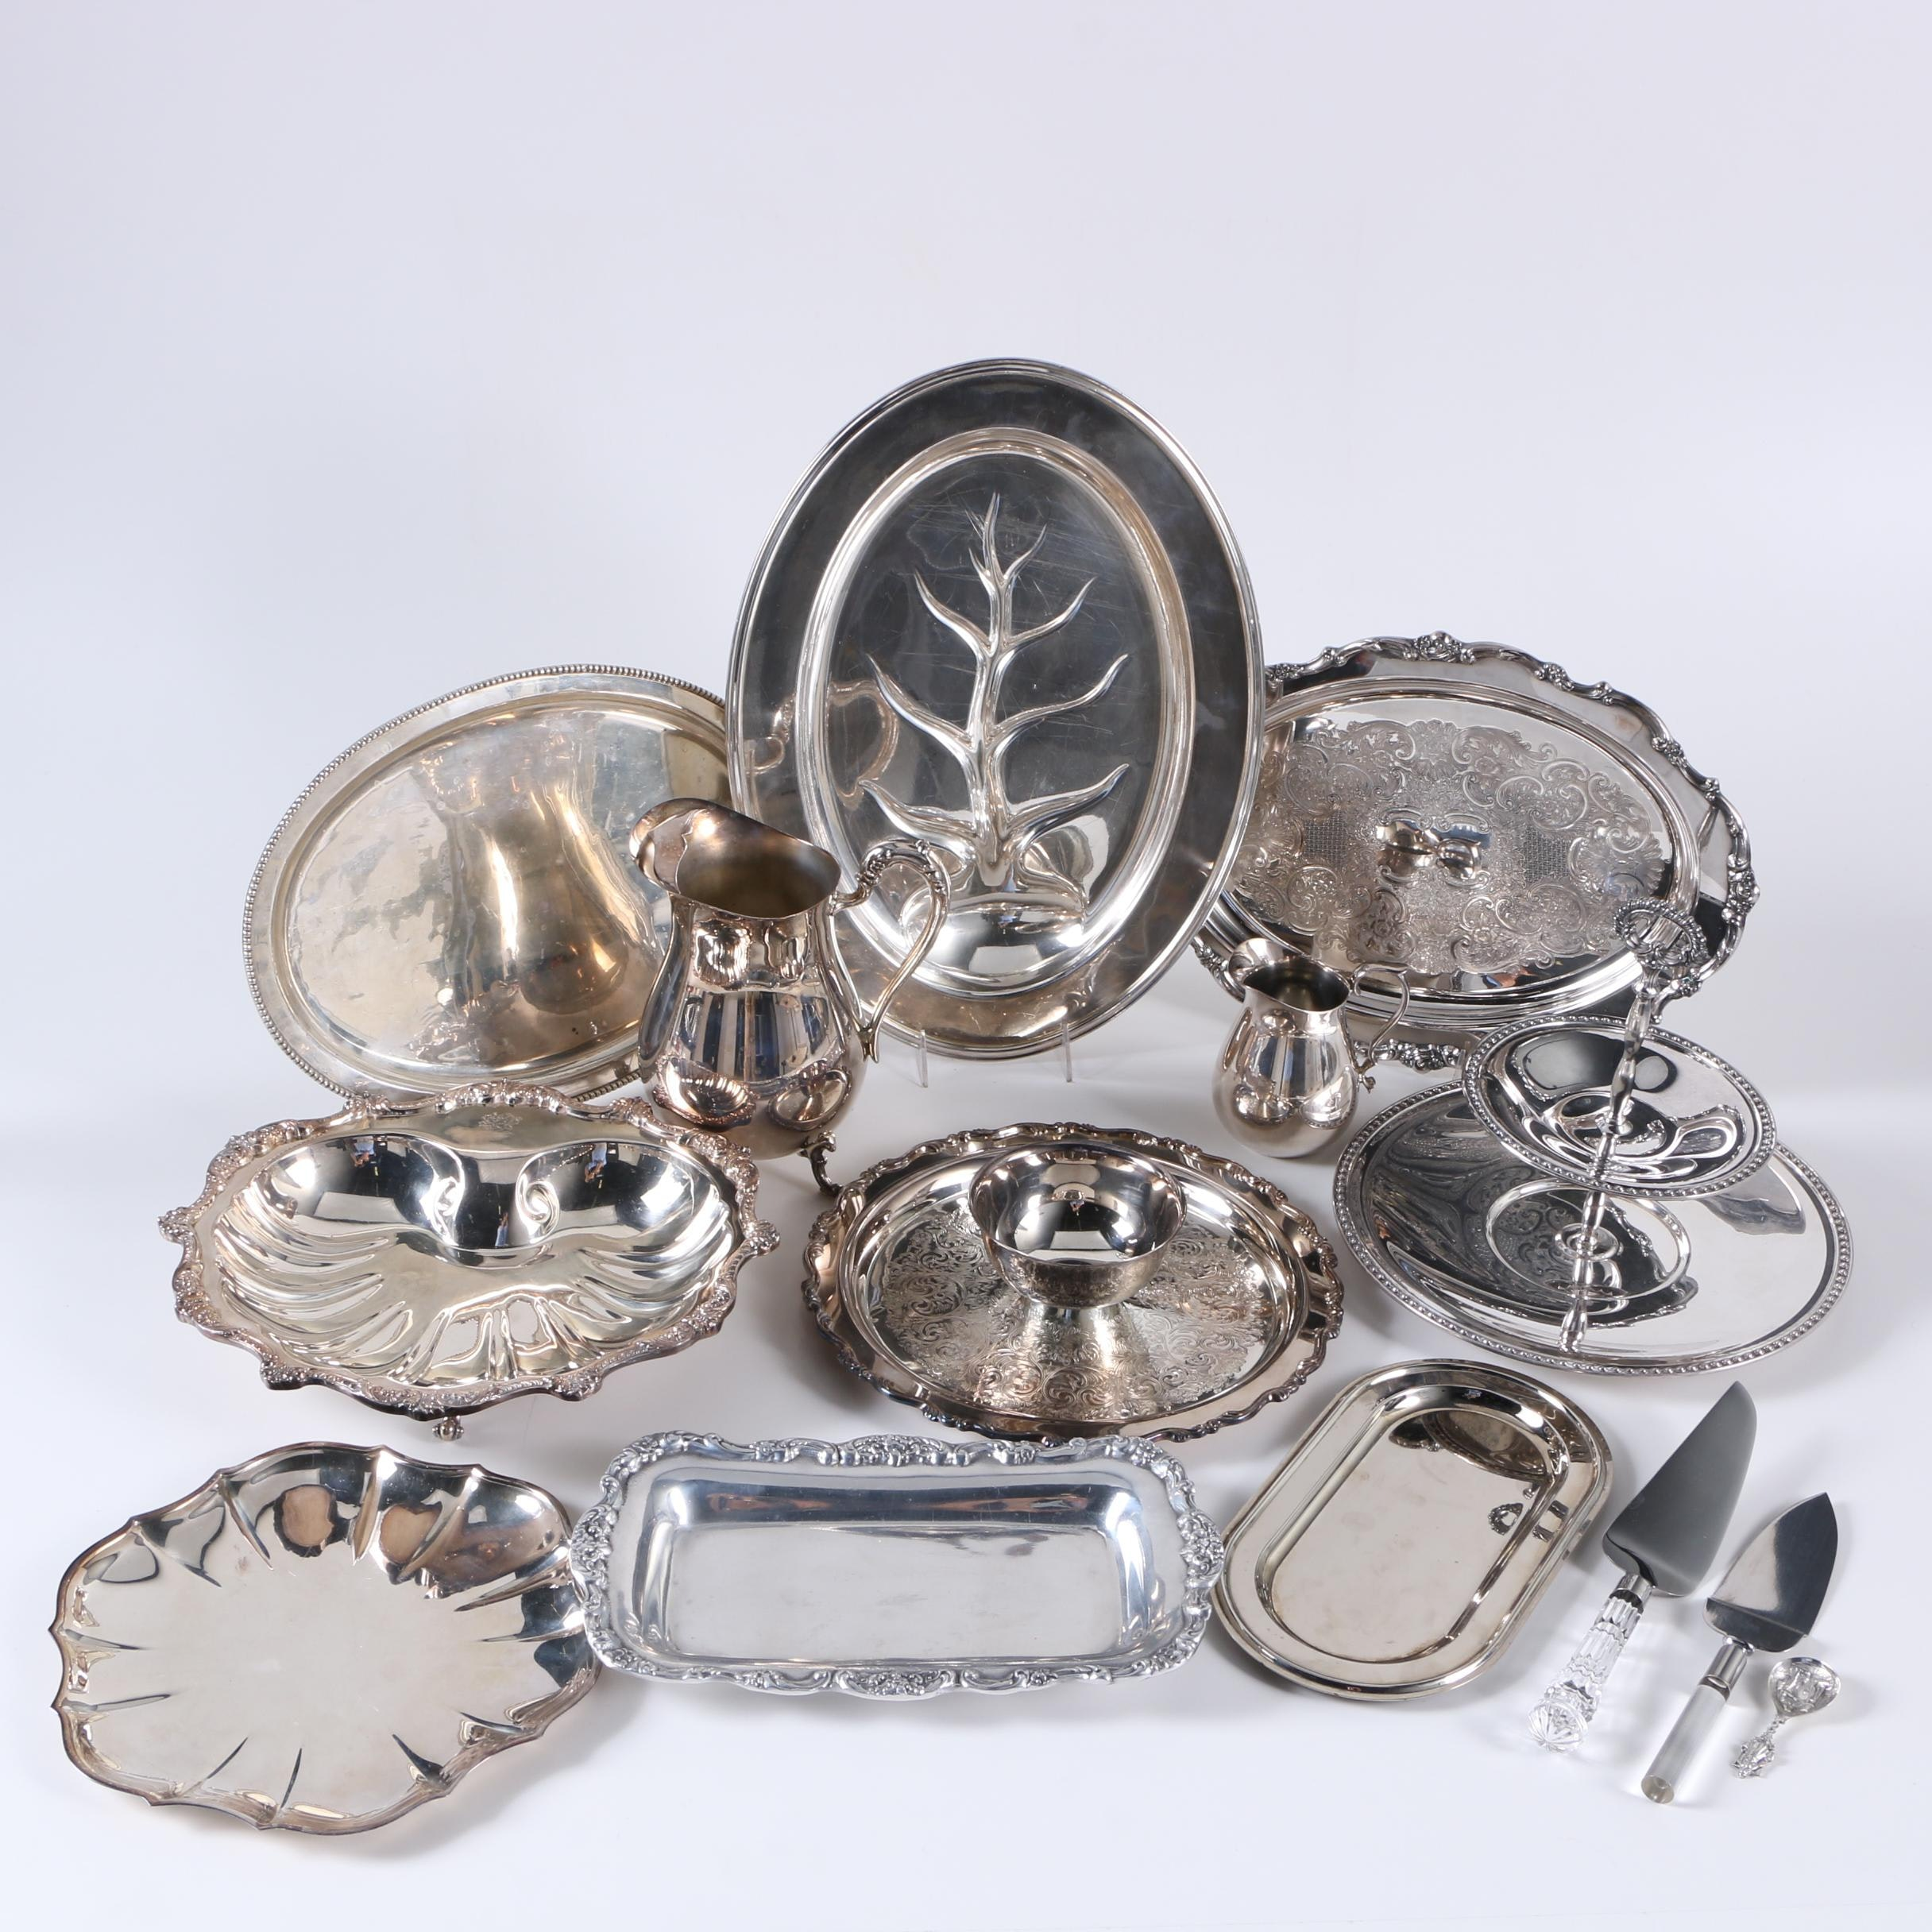 1929 Reed & Barton Silver Plate Meat Serving Tray and Assorted Silver Plate Servingware